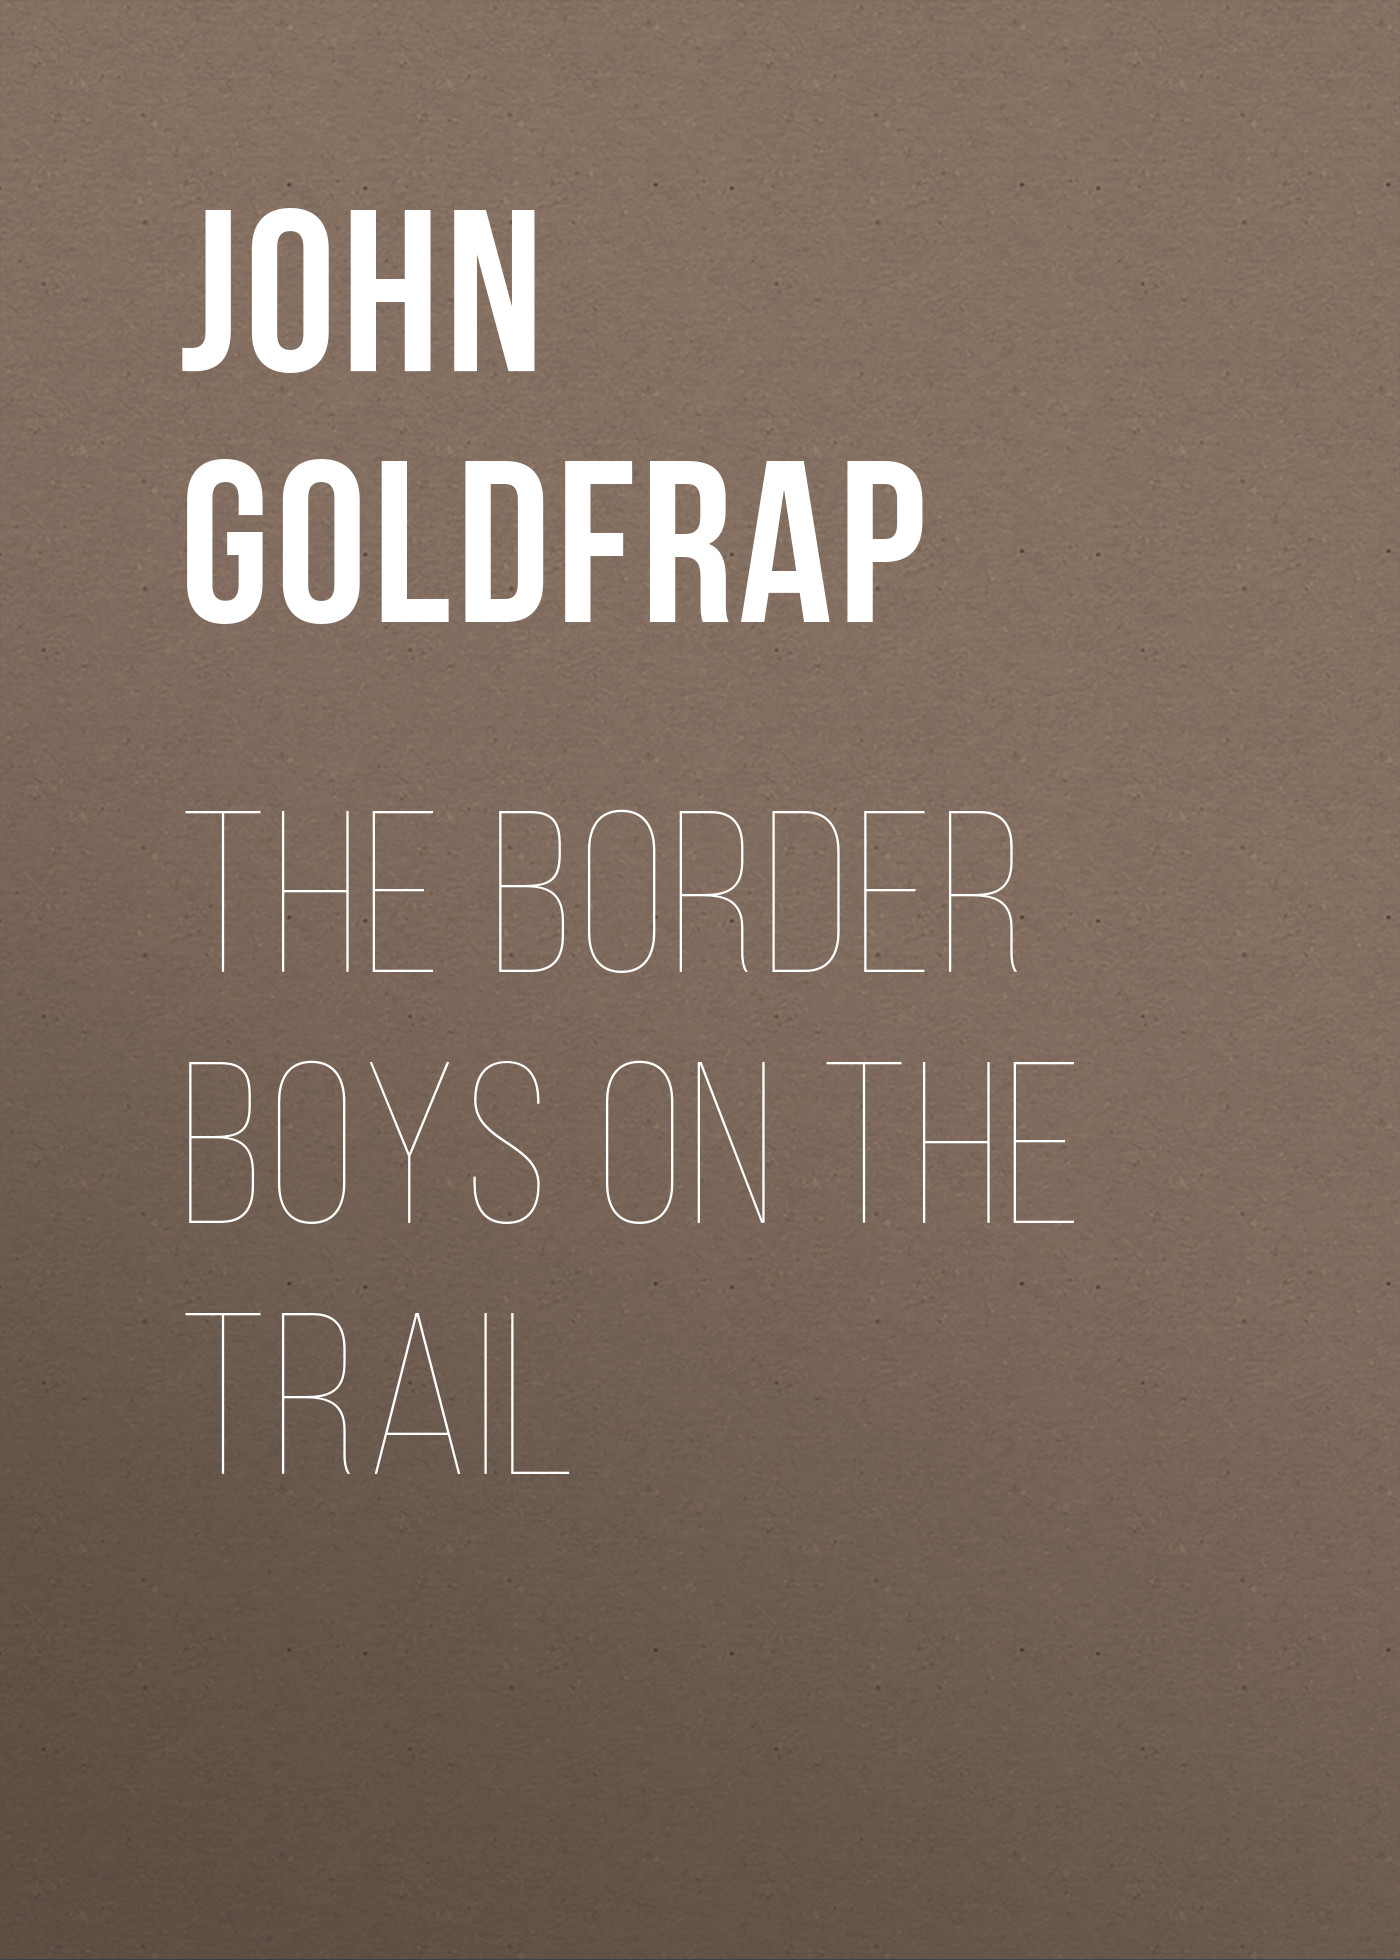 Goldfrap John Henry The Border Boys on the Trail ralph compton ride the hard trail